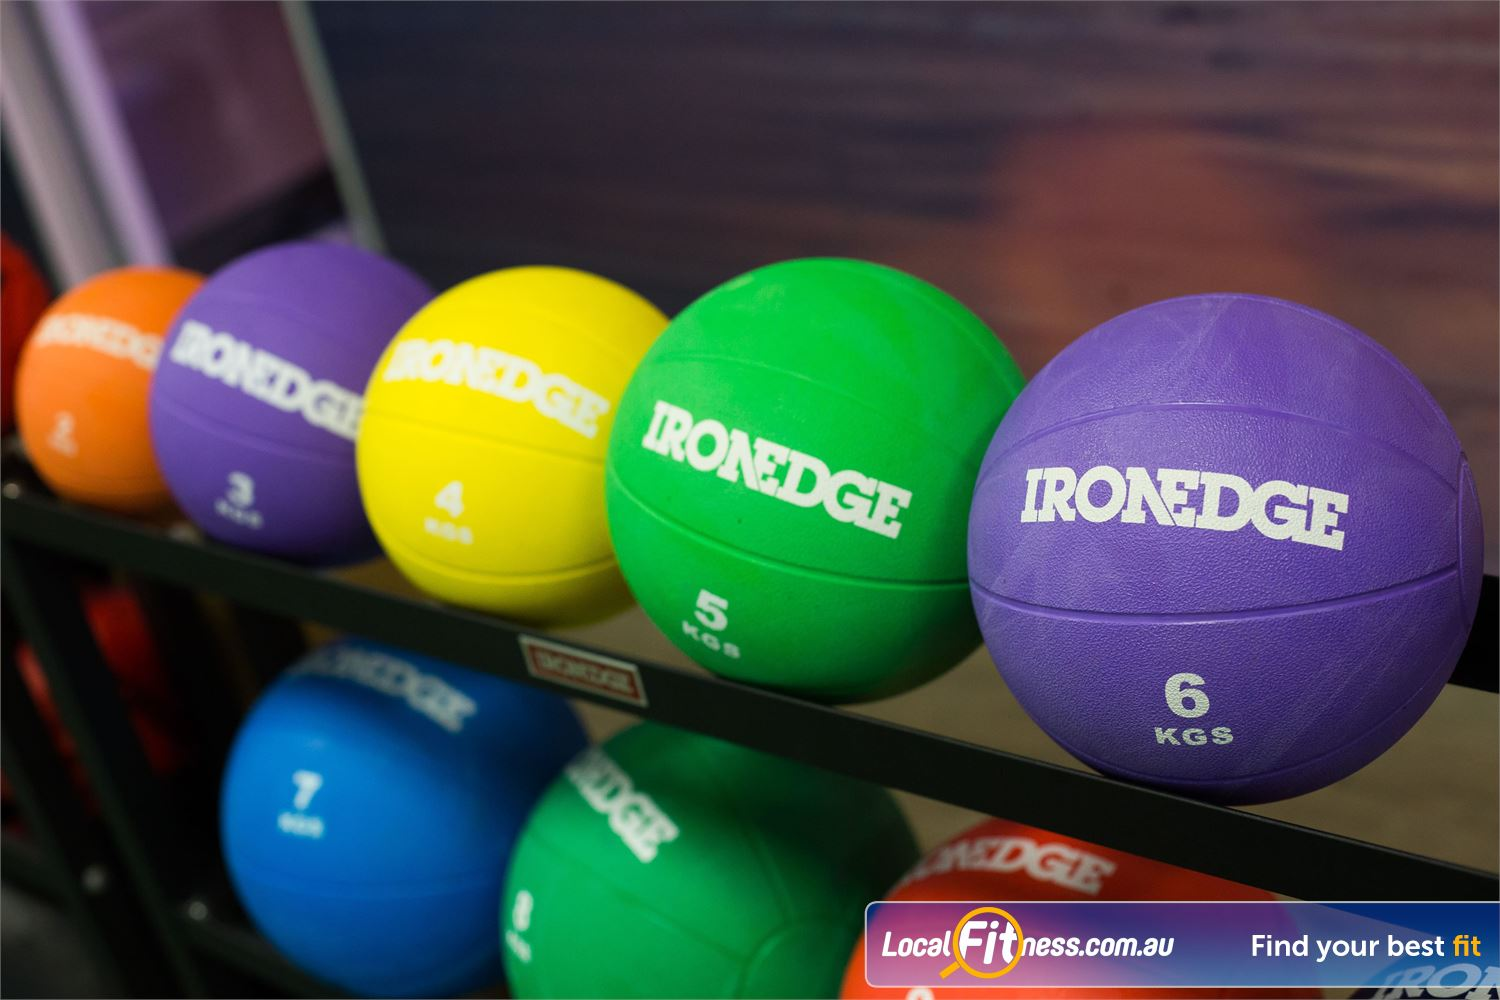 Fit n Fast Wetherill Park Functional training with medicine balls and more.